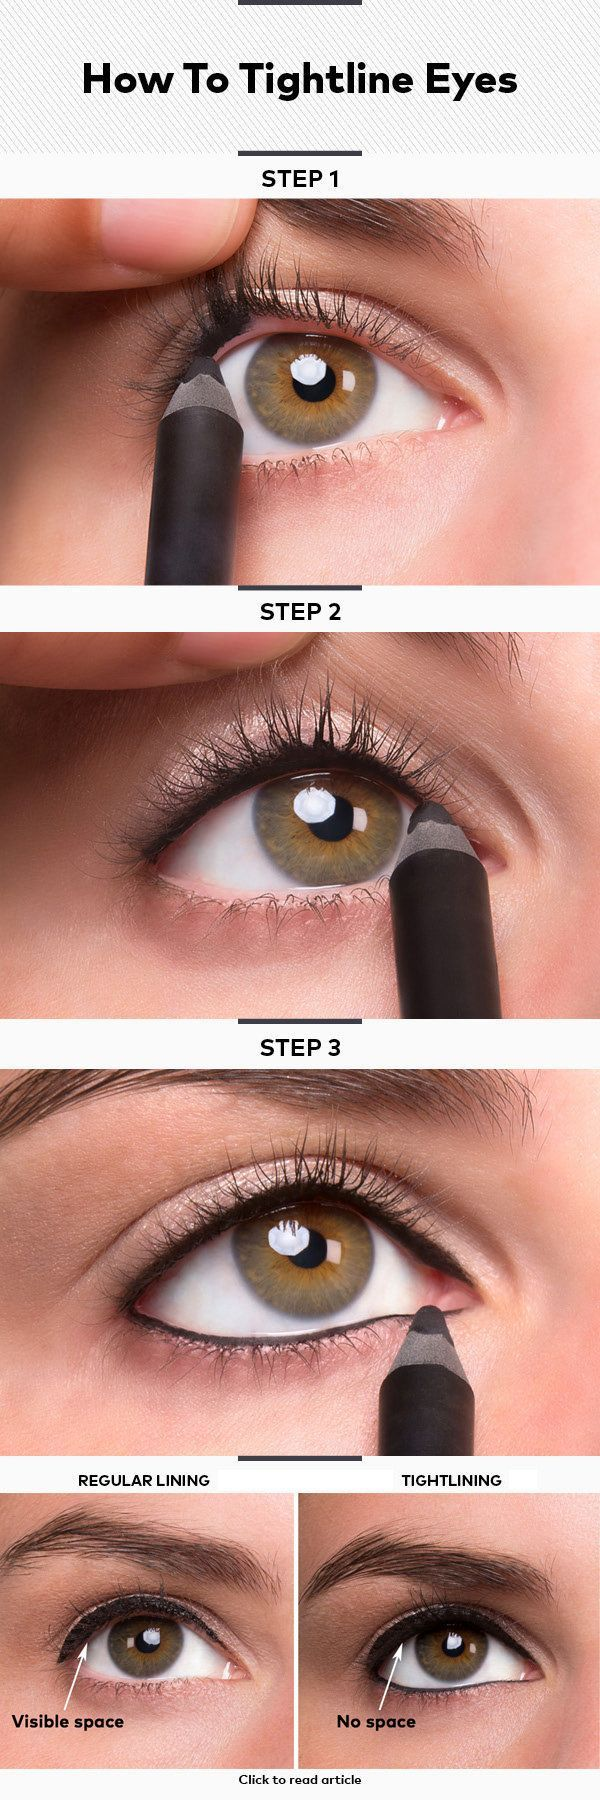 How To Tightline Eyes | Beautylish